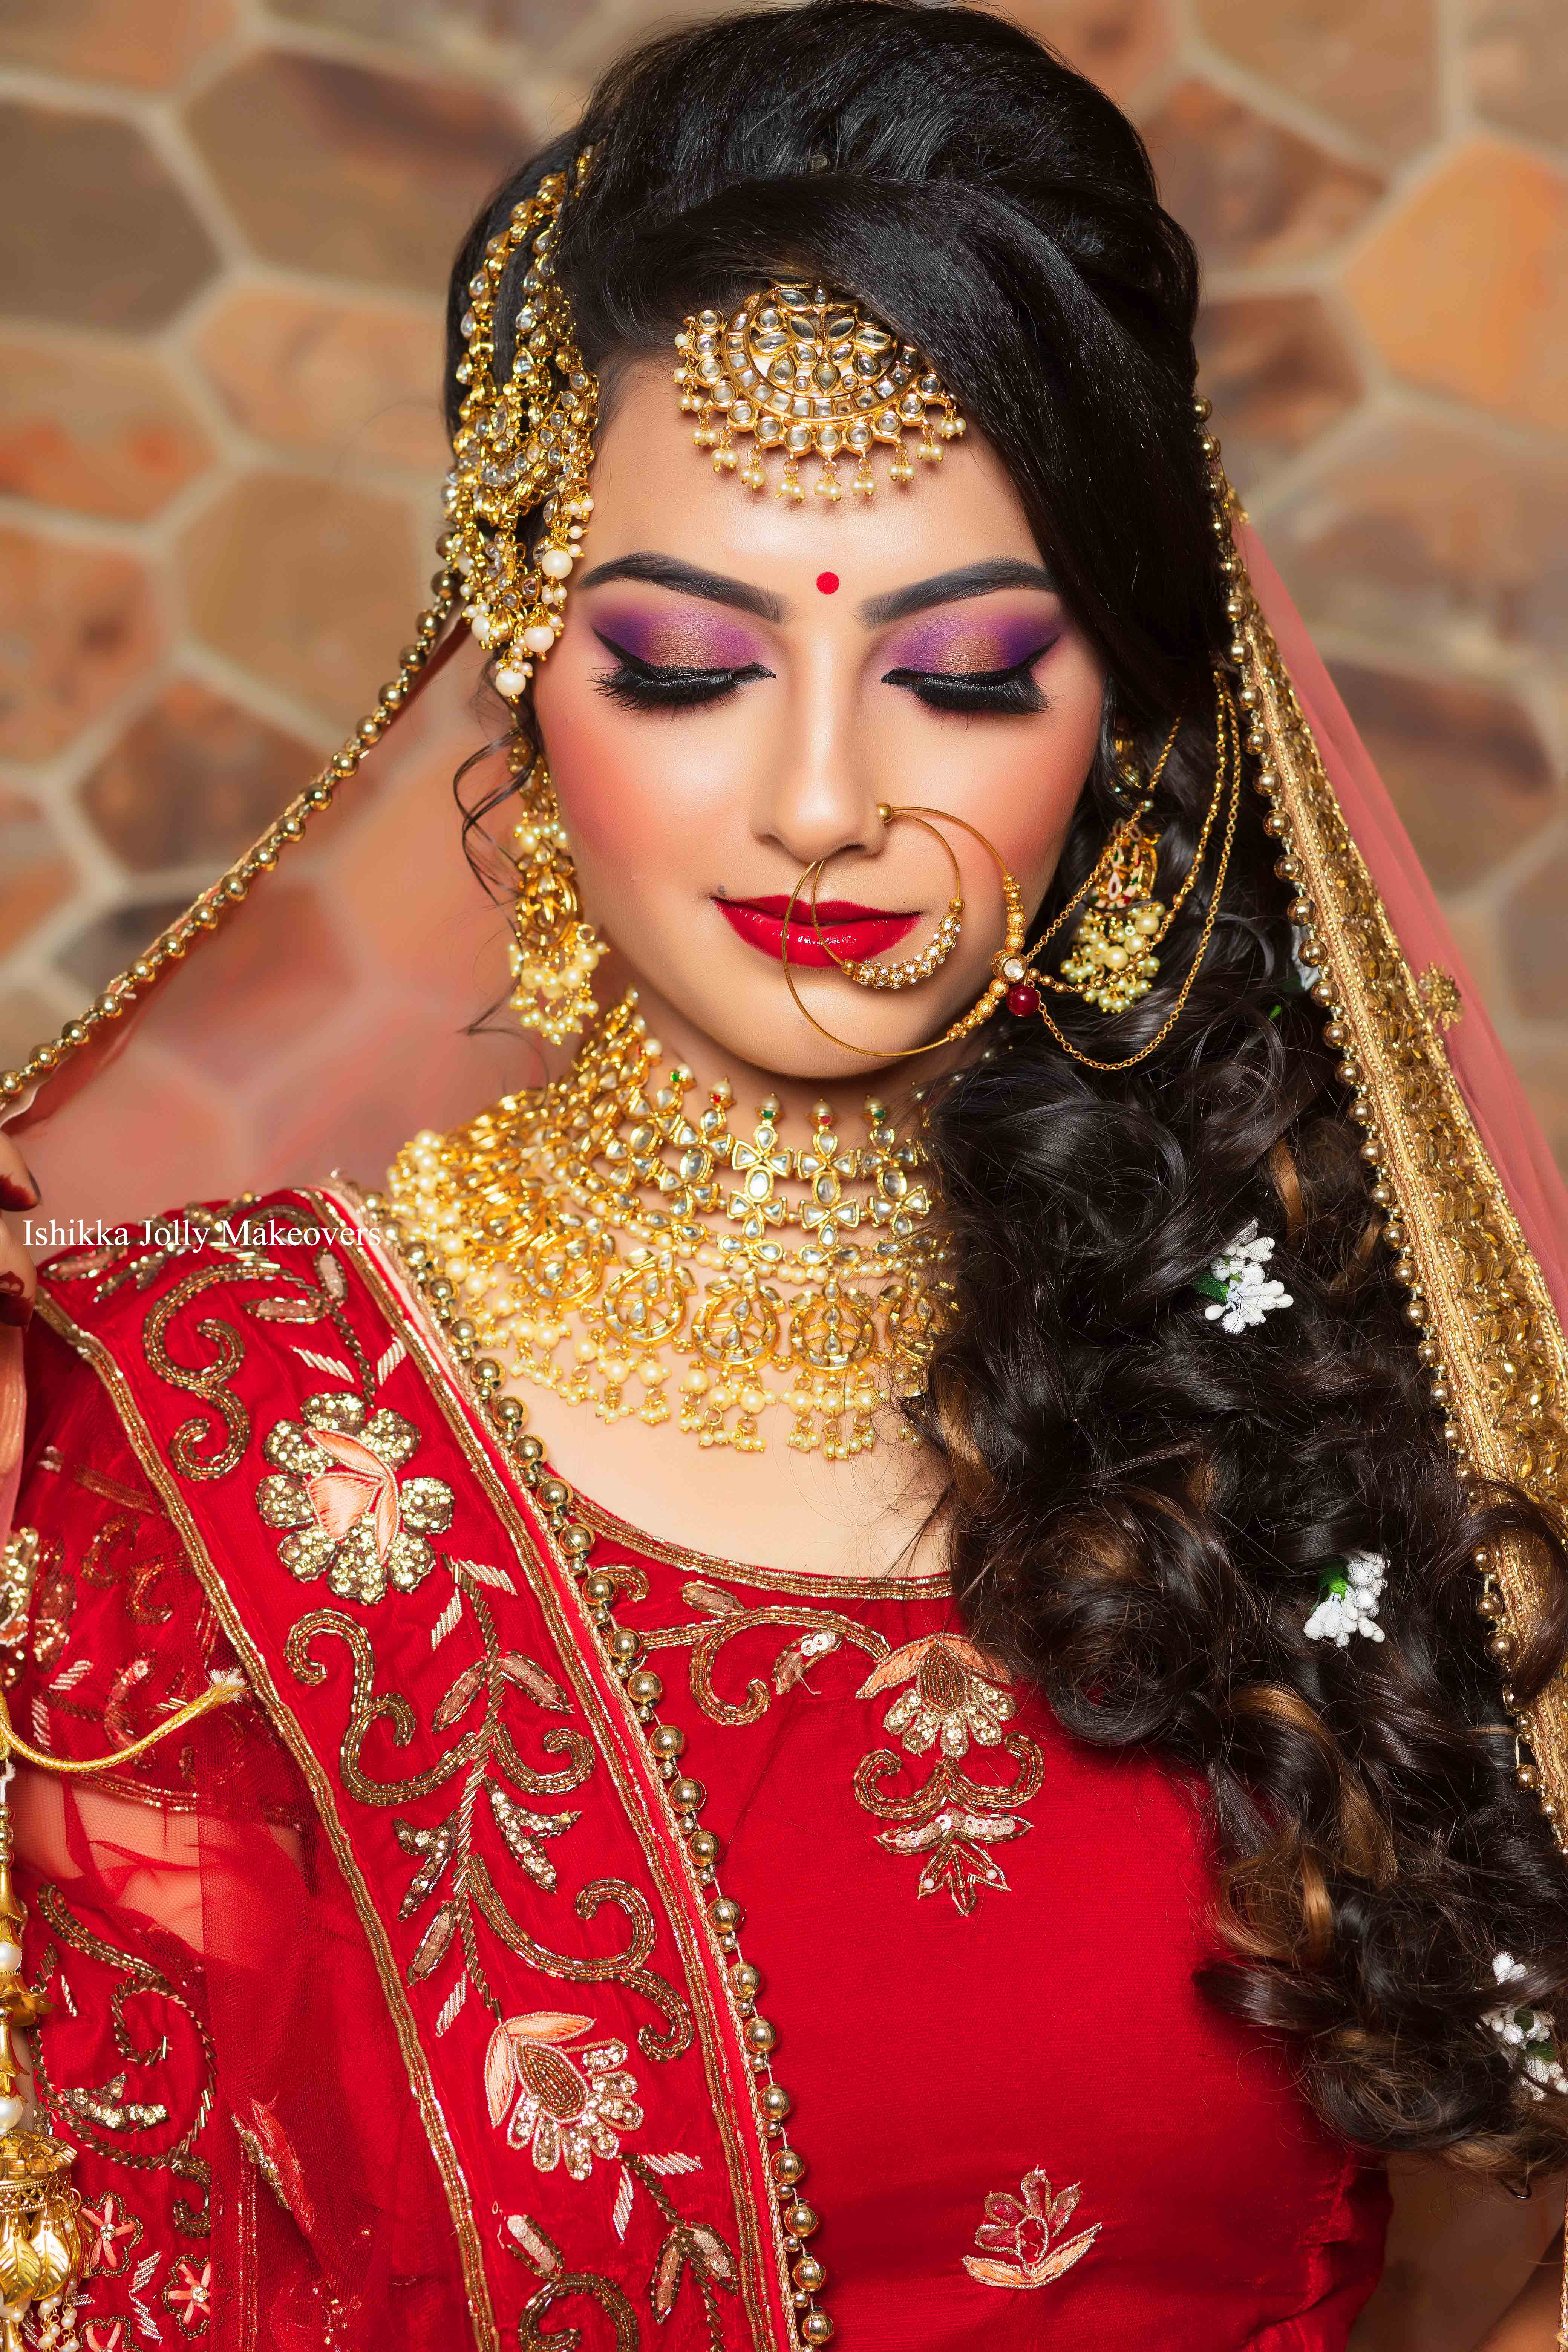 Most recent 2021 Eye Makeup Trends To SAVE For Your Upcoming Wedding